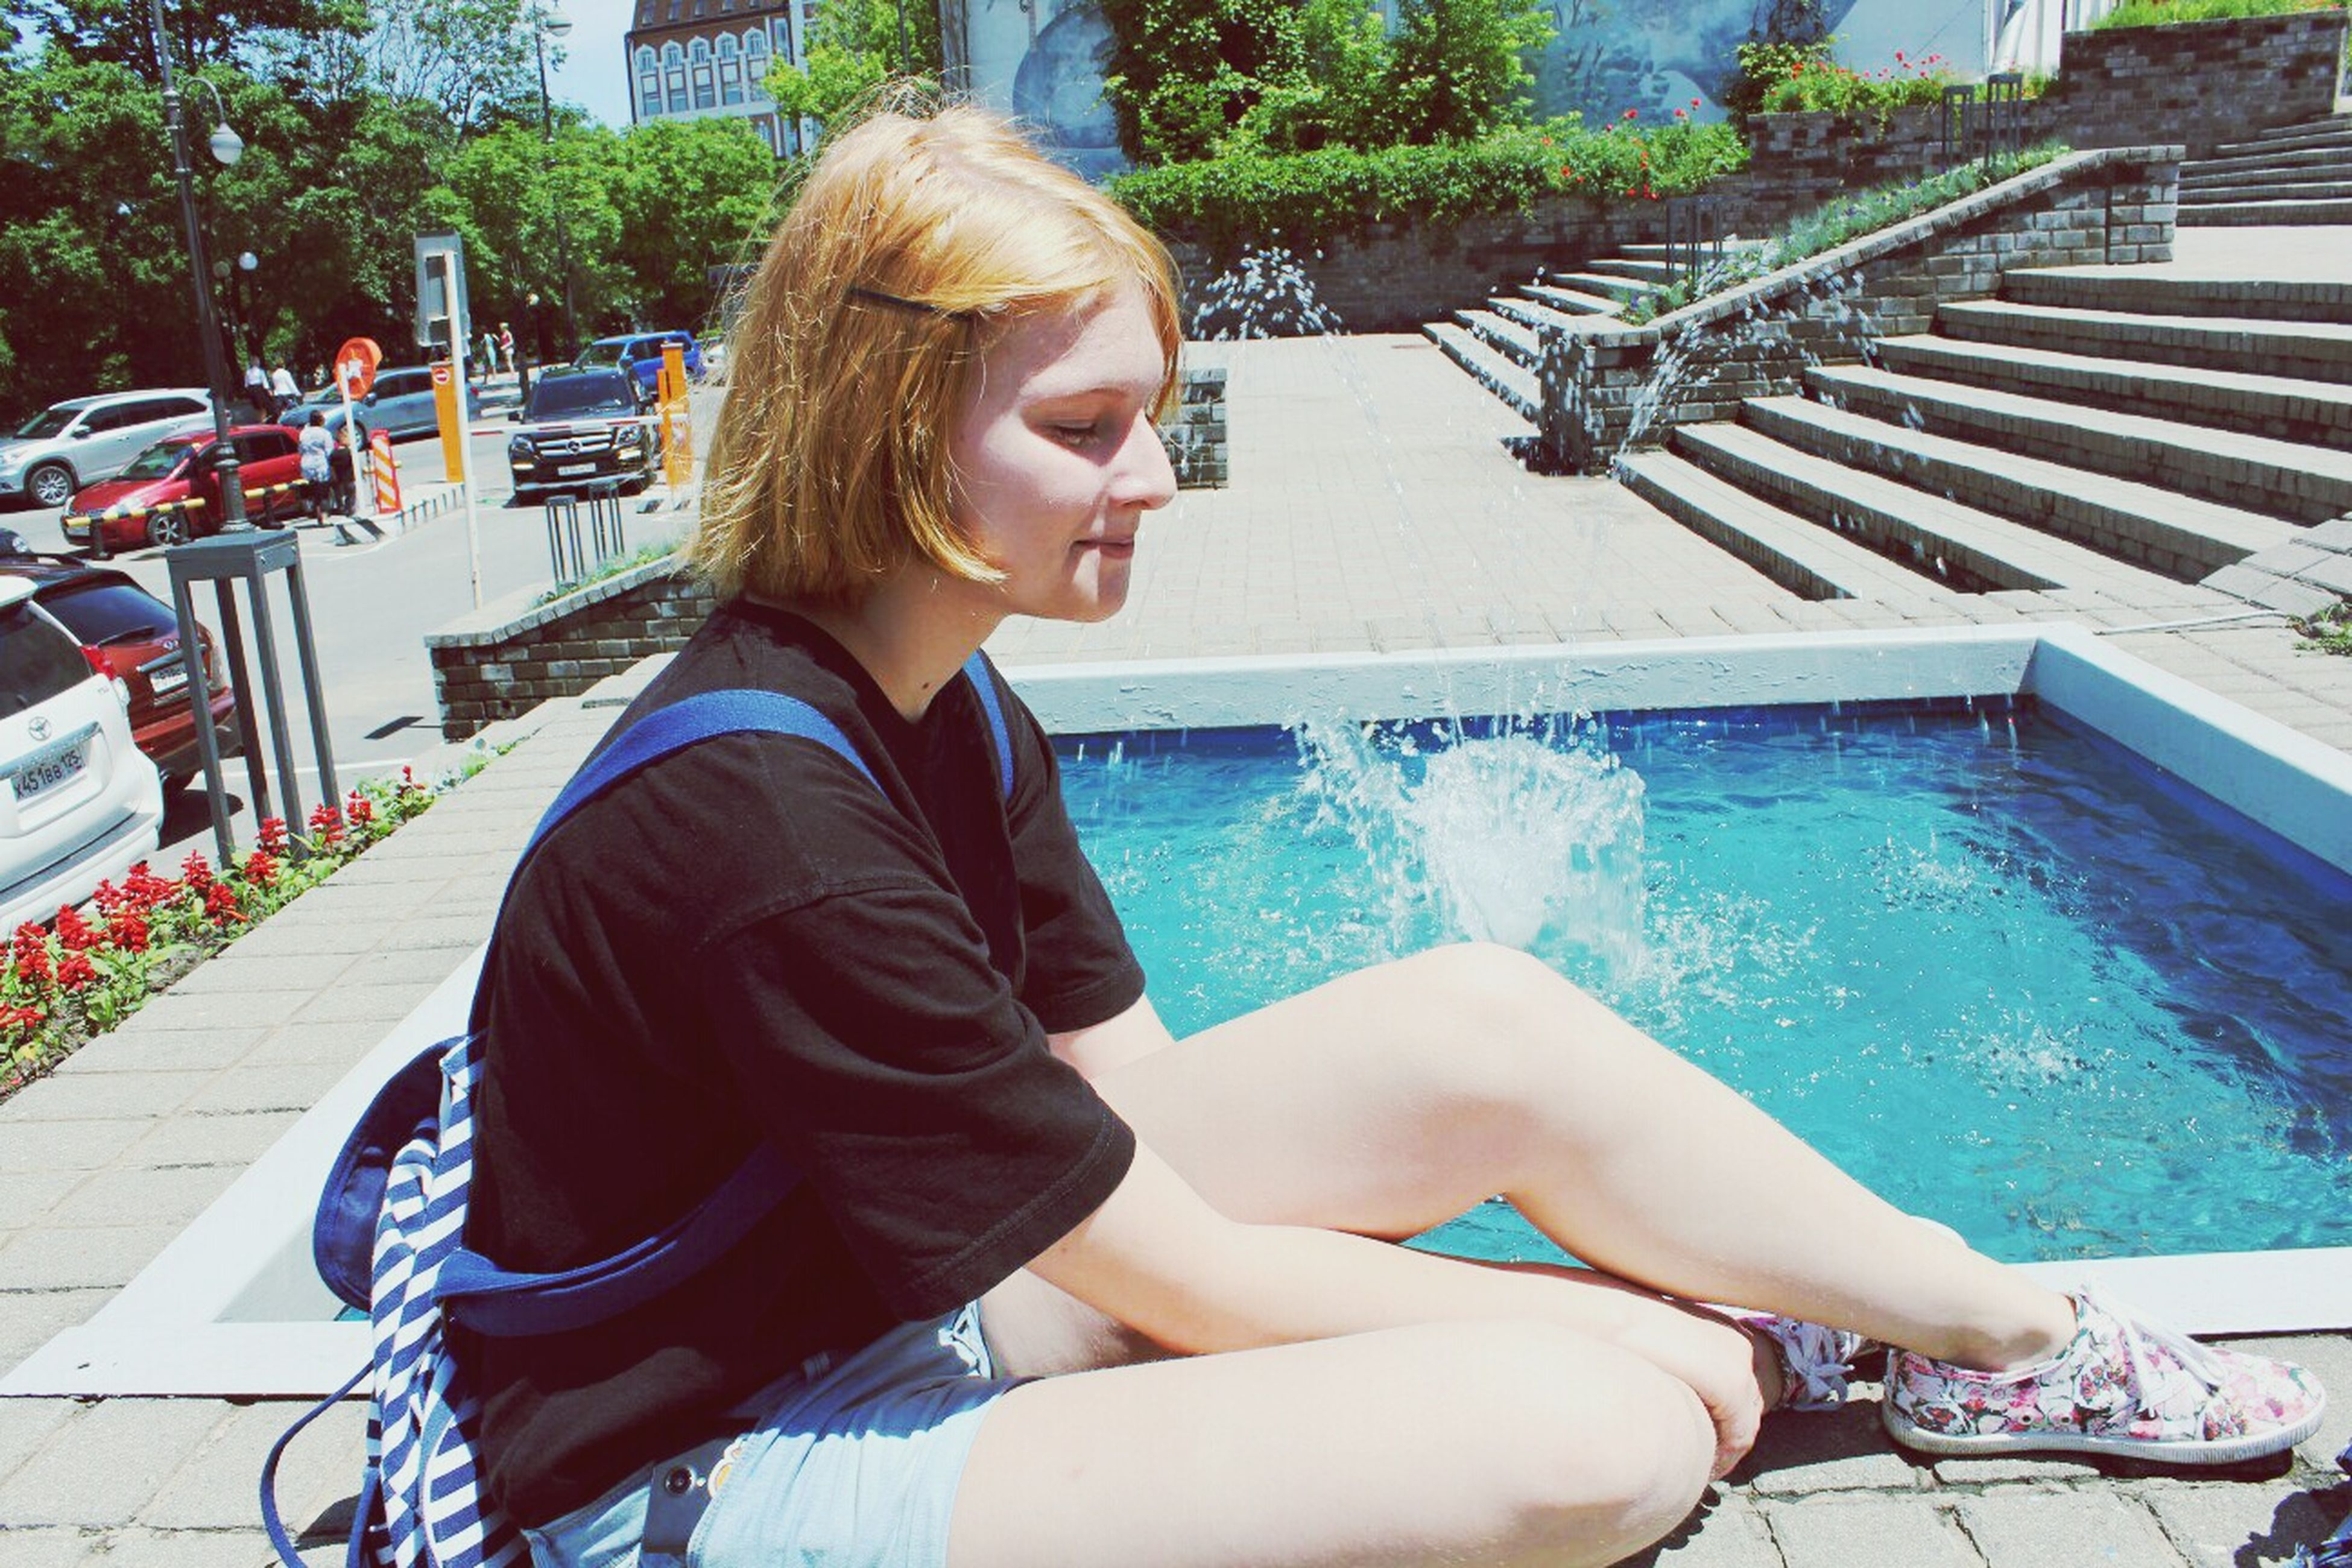 person, lifestyles, young adult, casual clothing, leisure activity, building exterior, built structure, architecture, looking at camera, young women, portrait, sunglasses, water, front view, three quarter length, sitting, smiling, standing